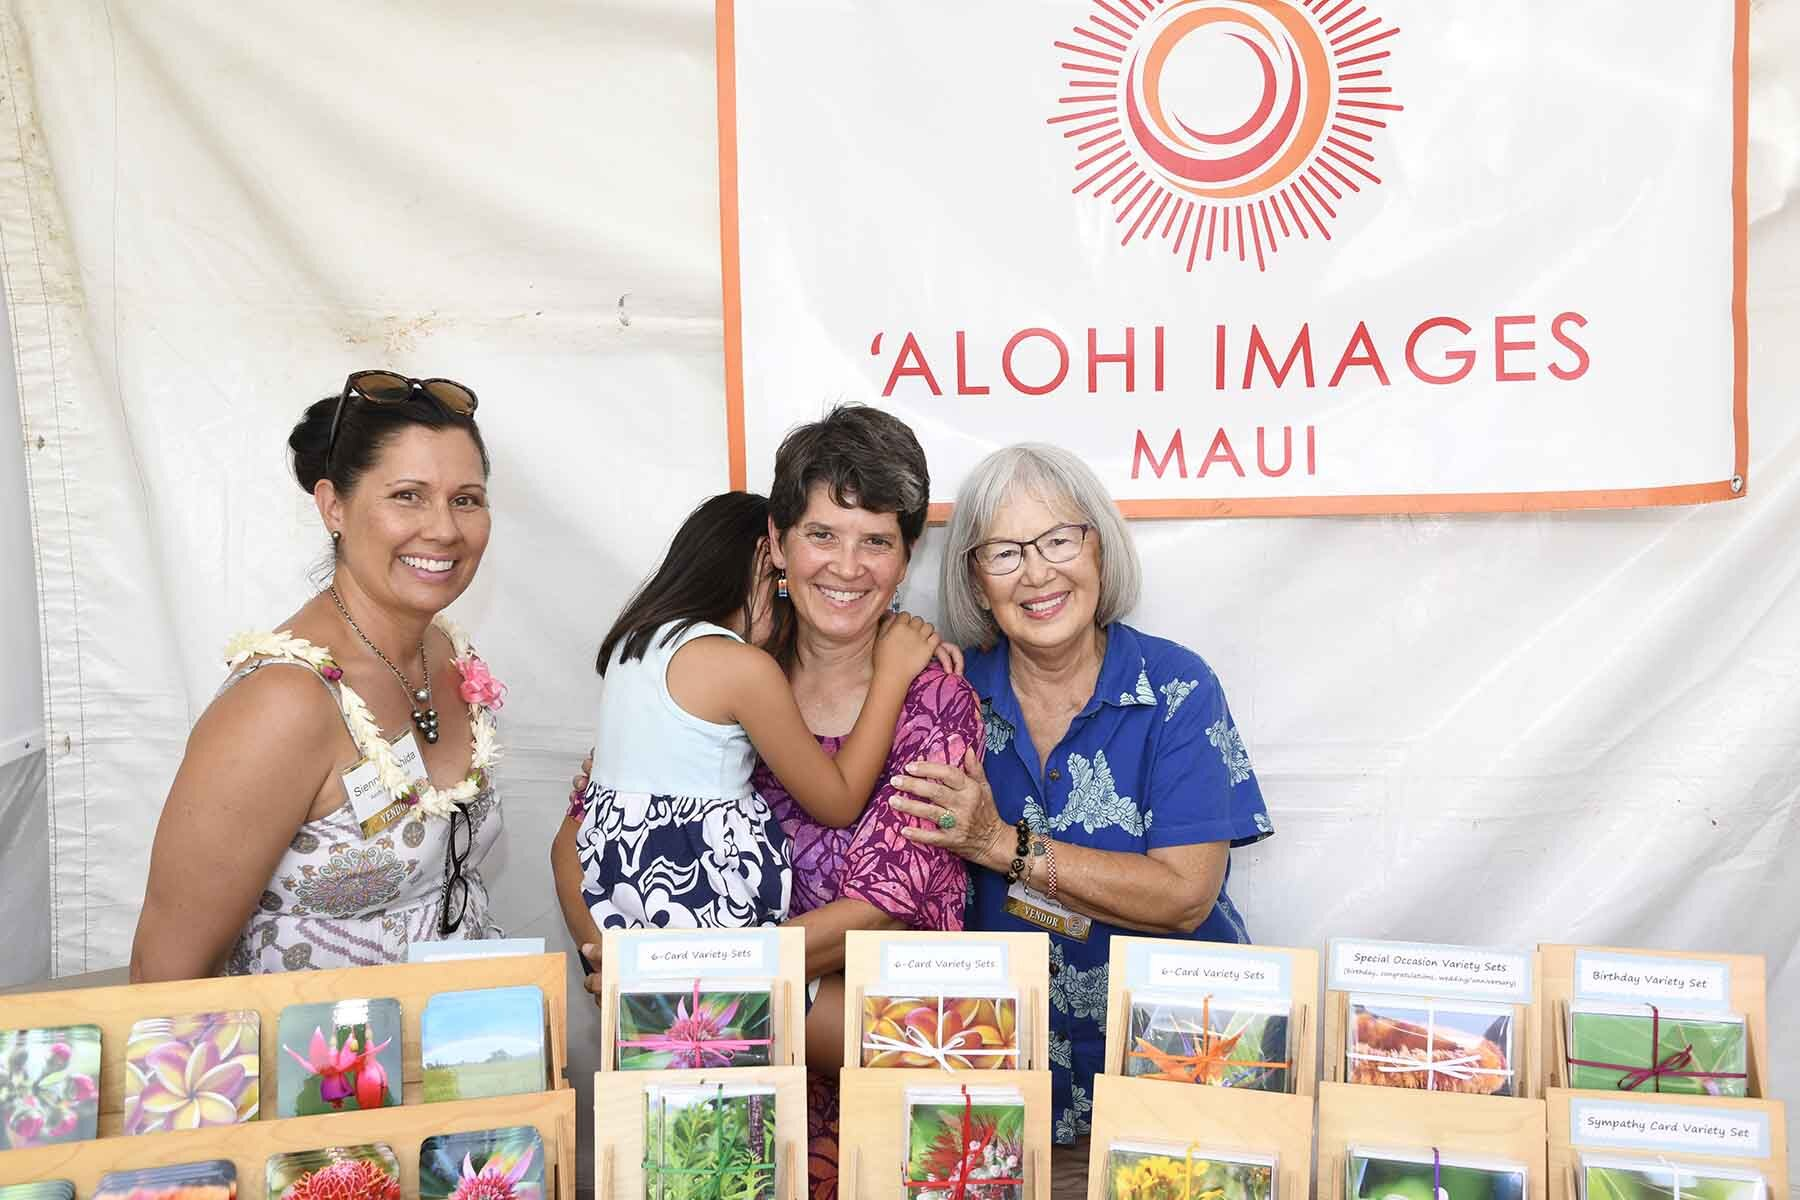 Returning festival vendor, Shelley Pellegrino of `Alohi Images Maui, will offer her popular island-inspired photo cards, coasters and gifts for every occasion.